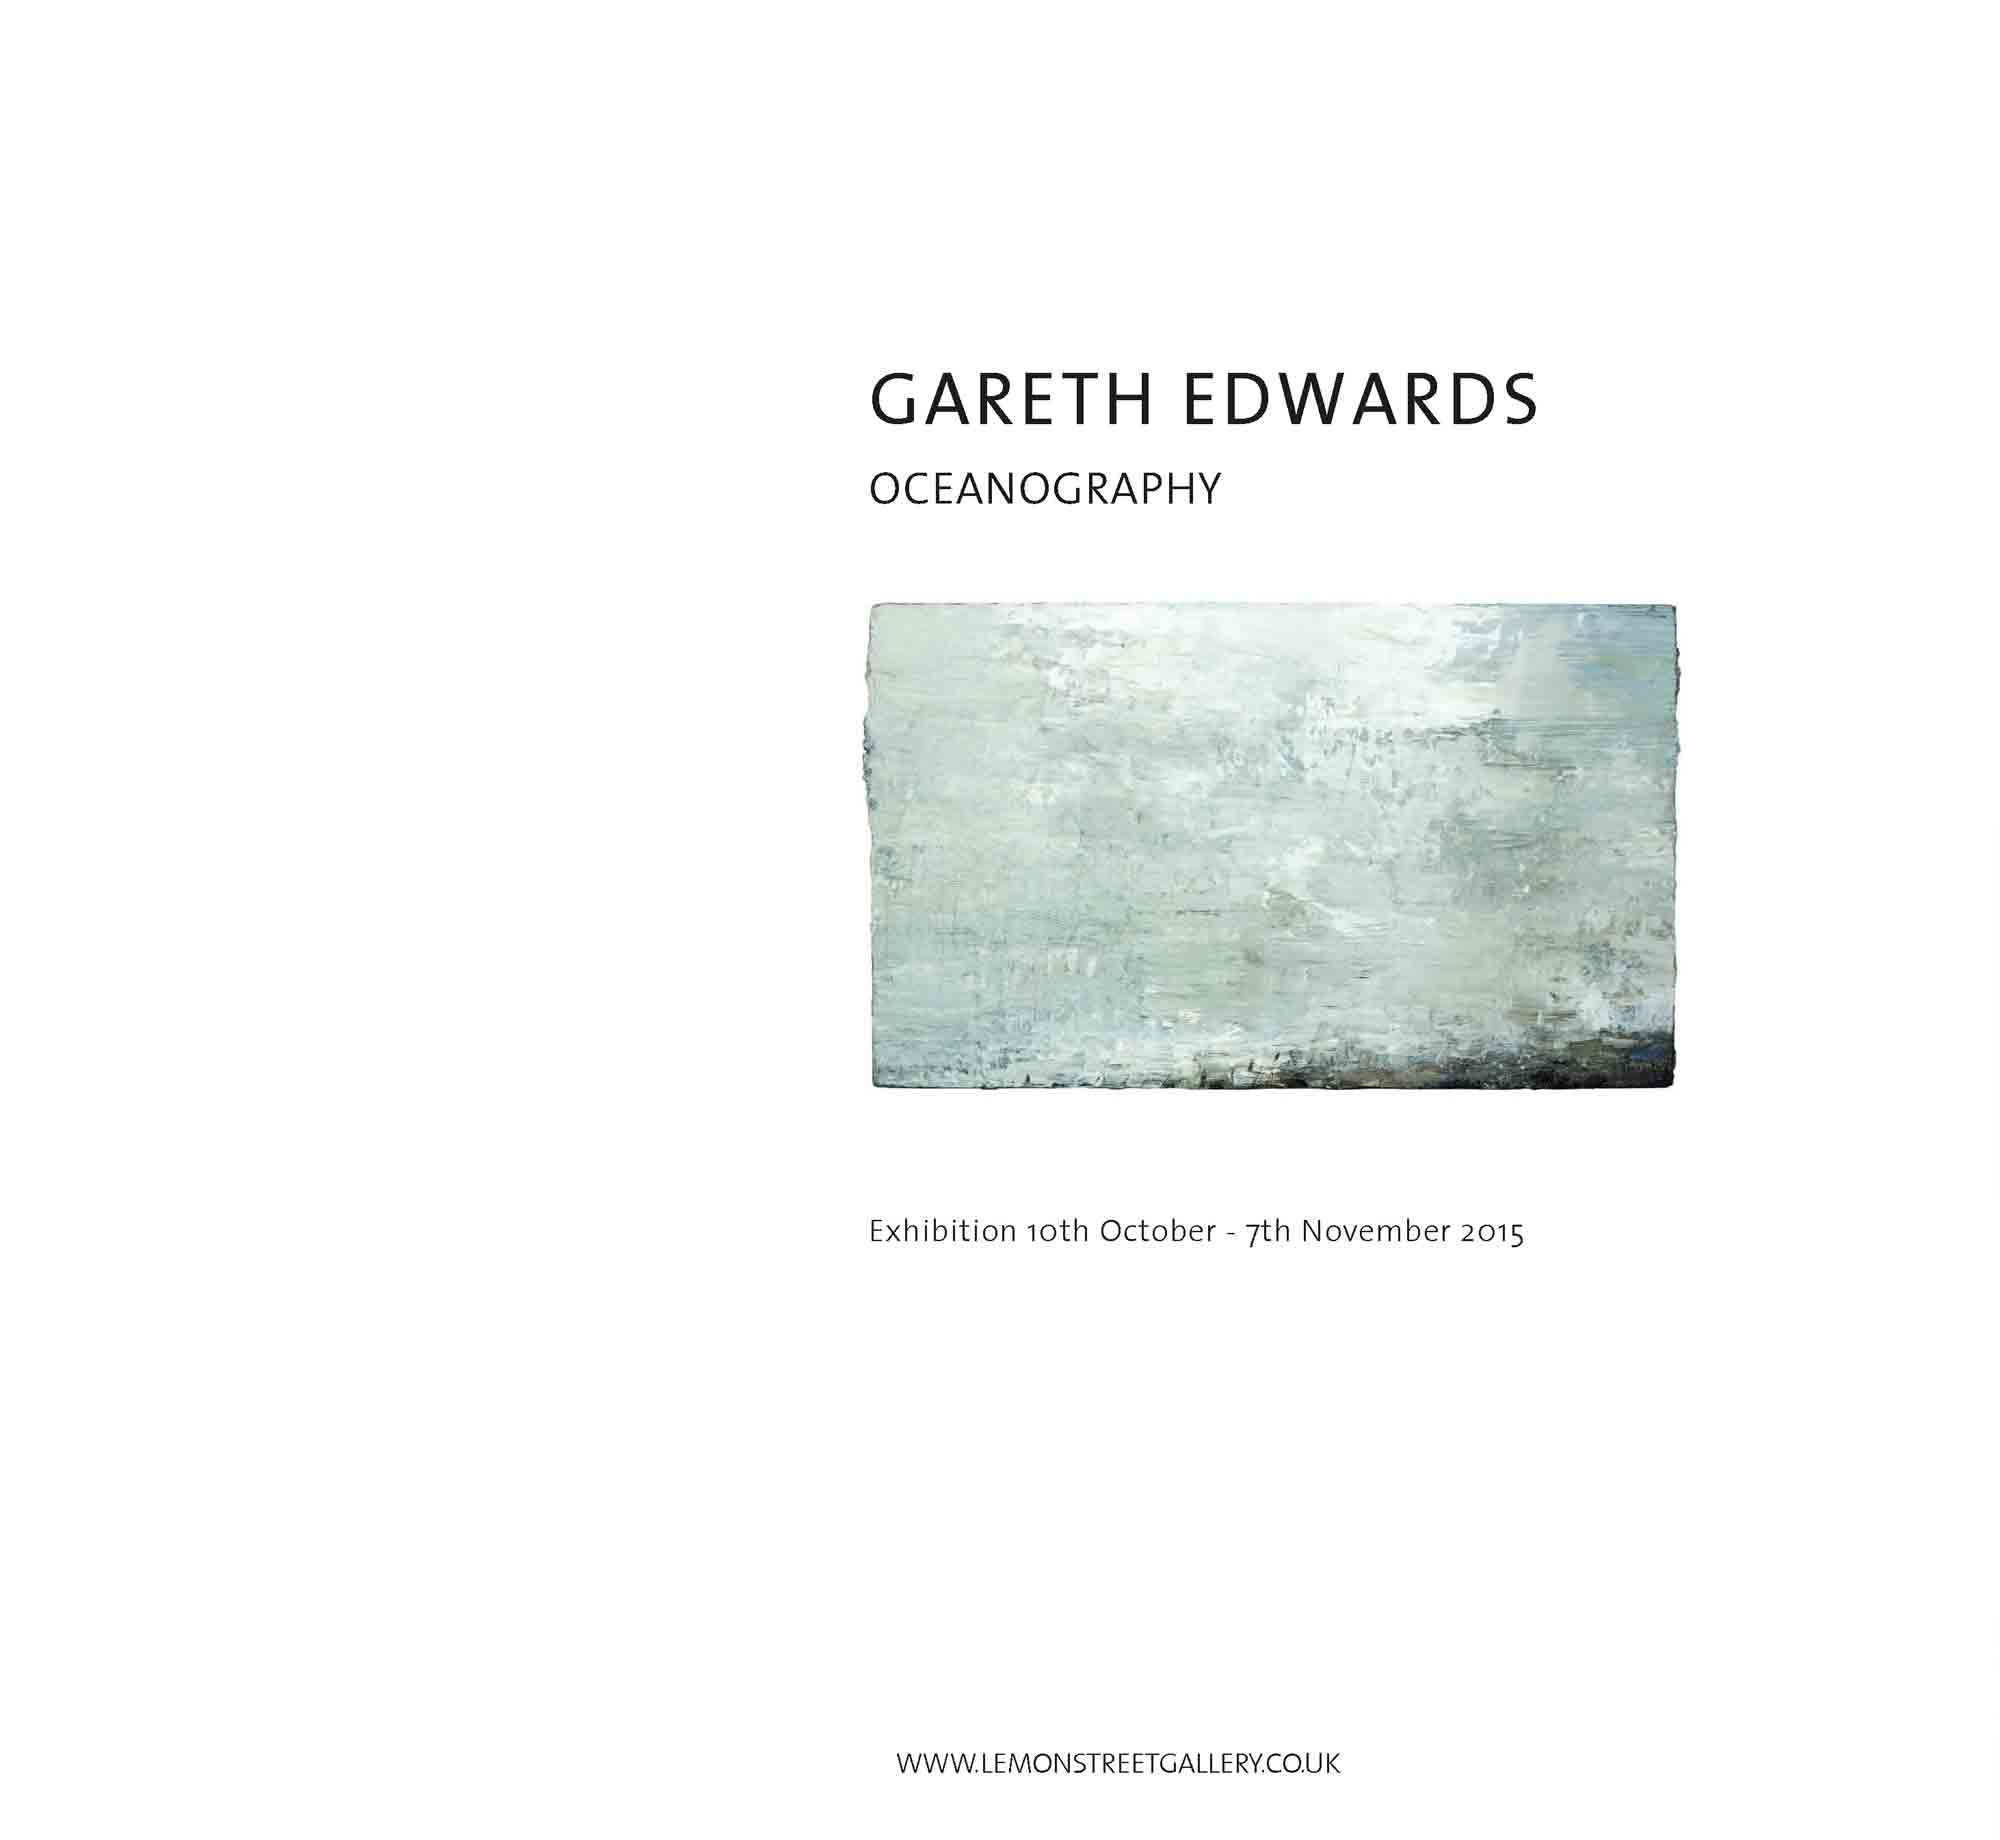 Gareth Edwards publication